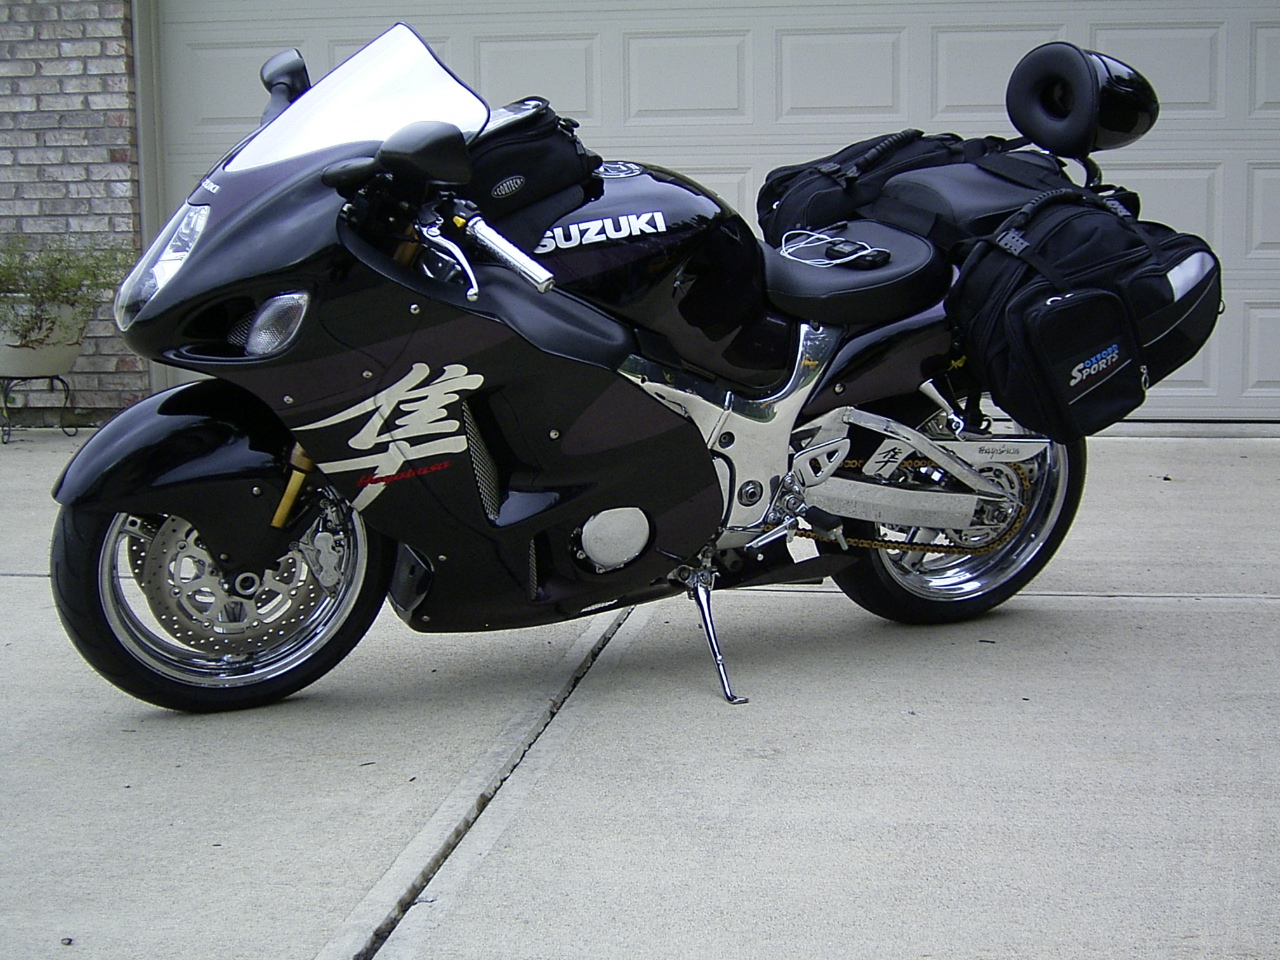 2 up riding/touring    who does it? - Sportbikes net